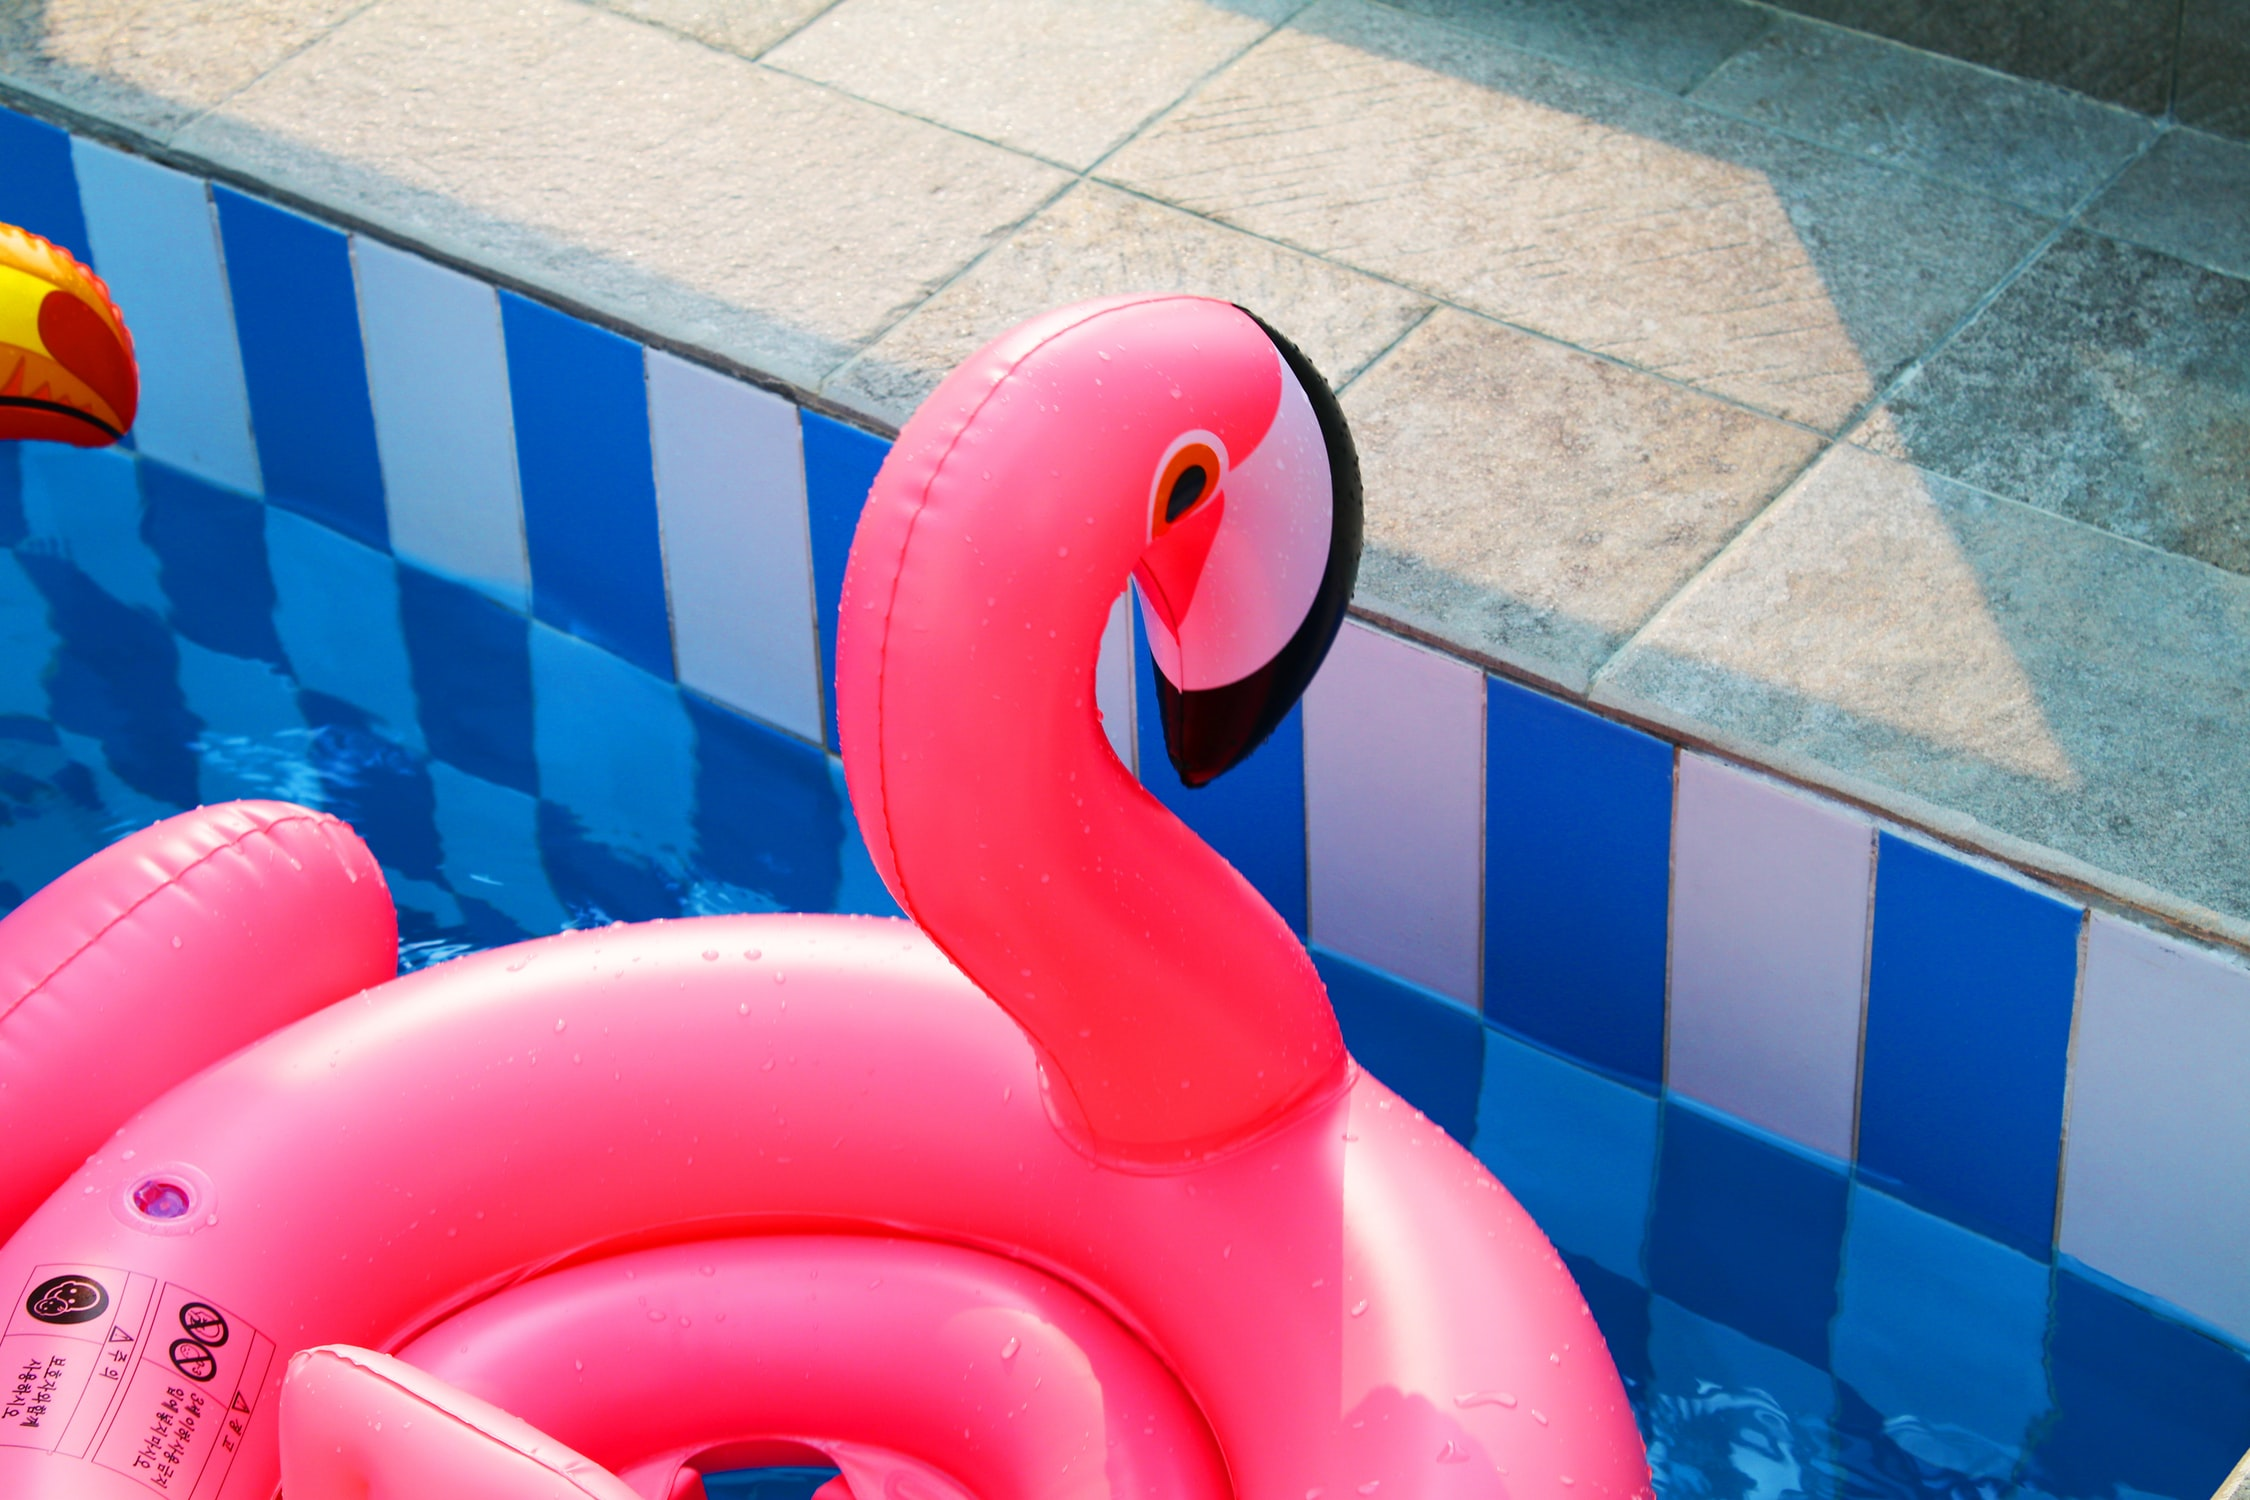 A pink flamingo-shaped flotation device floating in a pool.